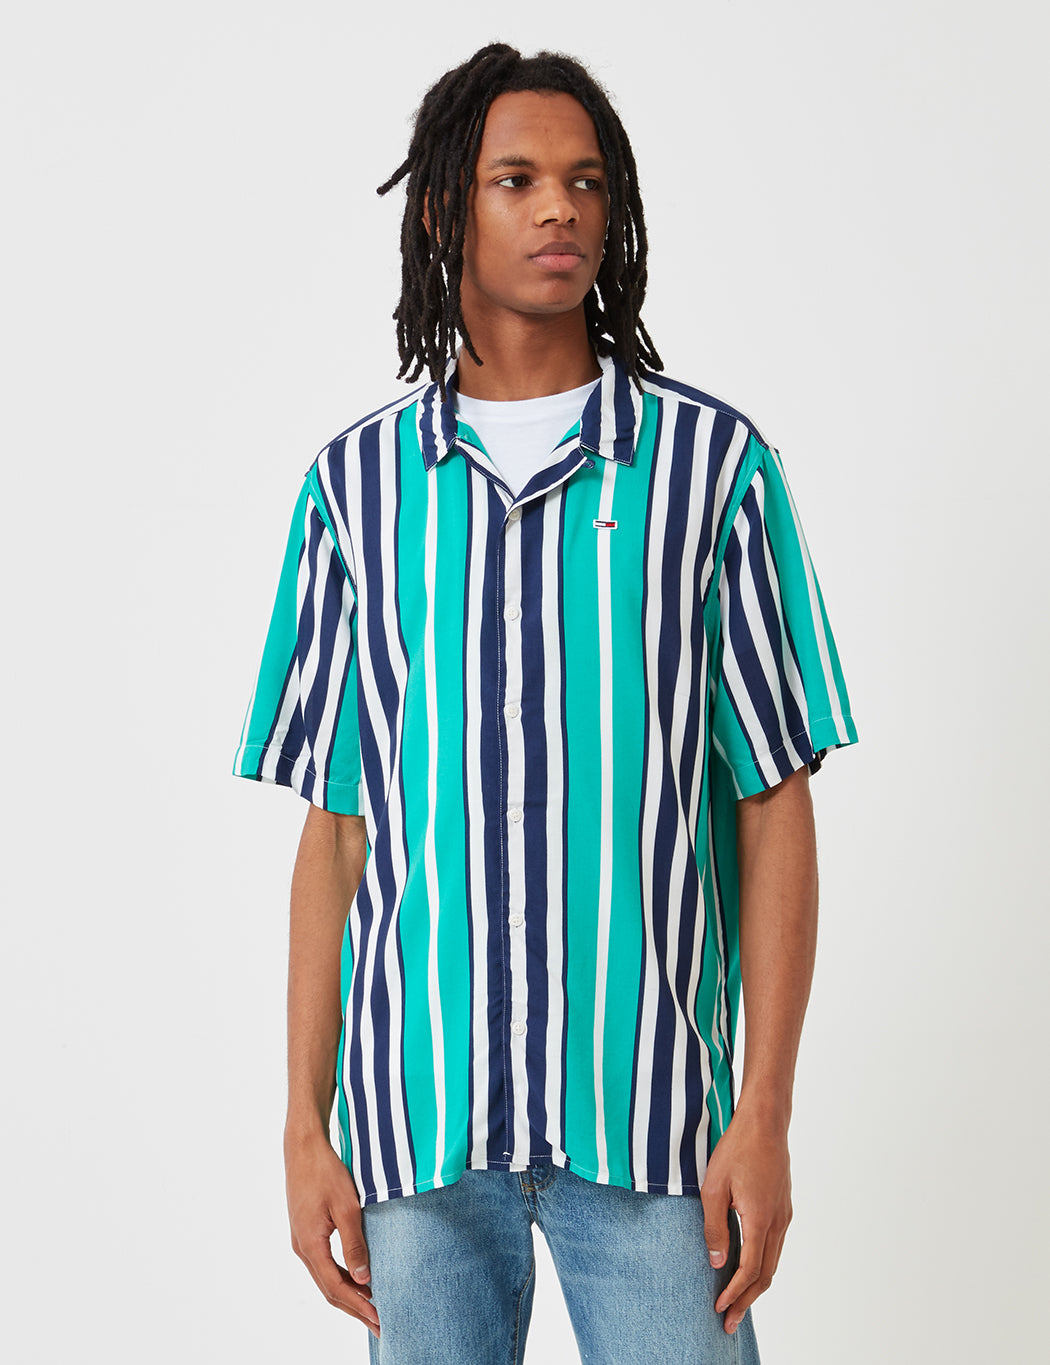 7d53f75a Tommy Hilfiger Camp Stripe Shirt - Dynasty Green/Blue | URBAN EXCESS.